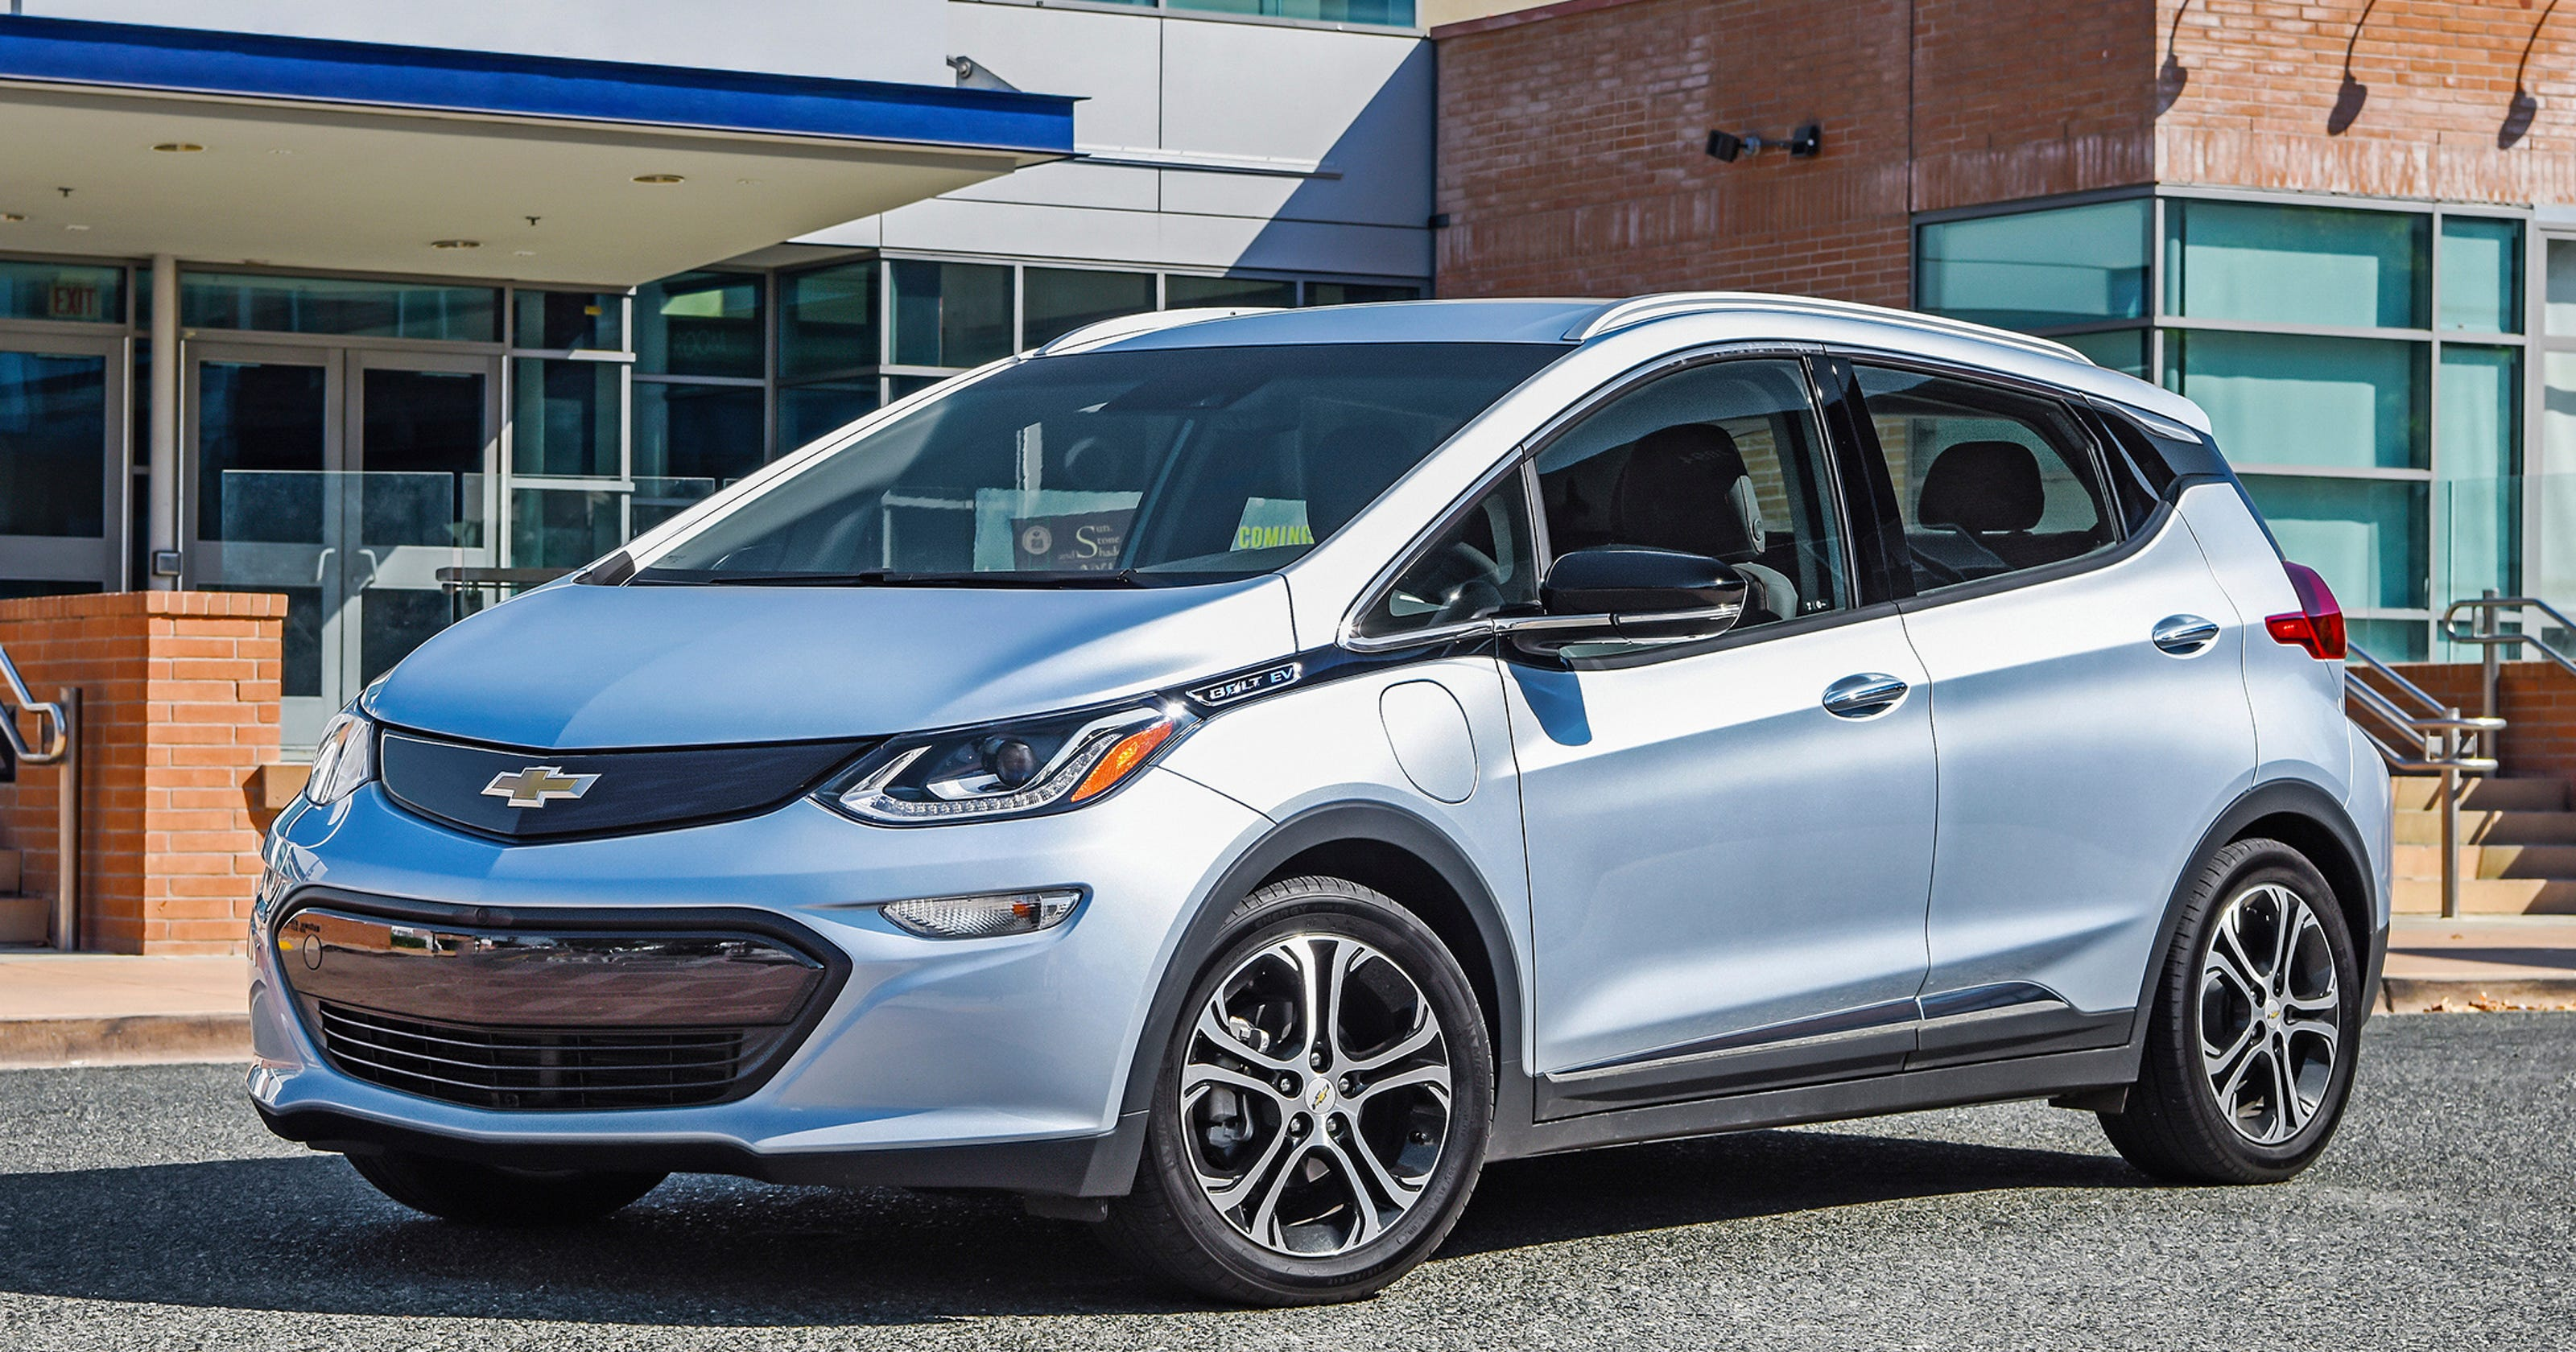 General Motors To Switch Electric Vehicles As Gas A Slow